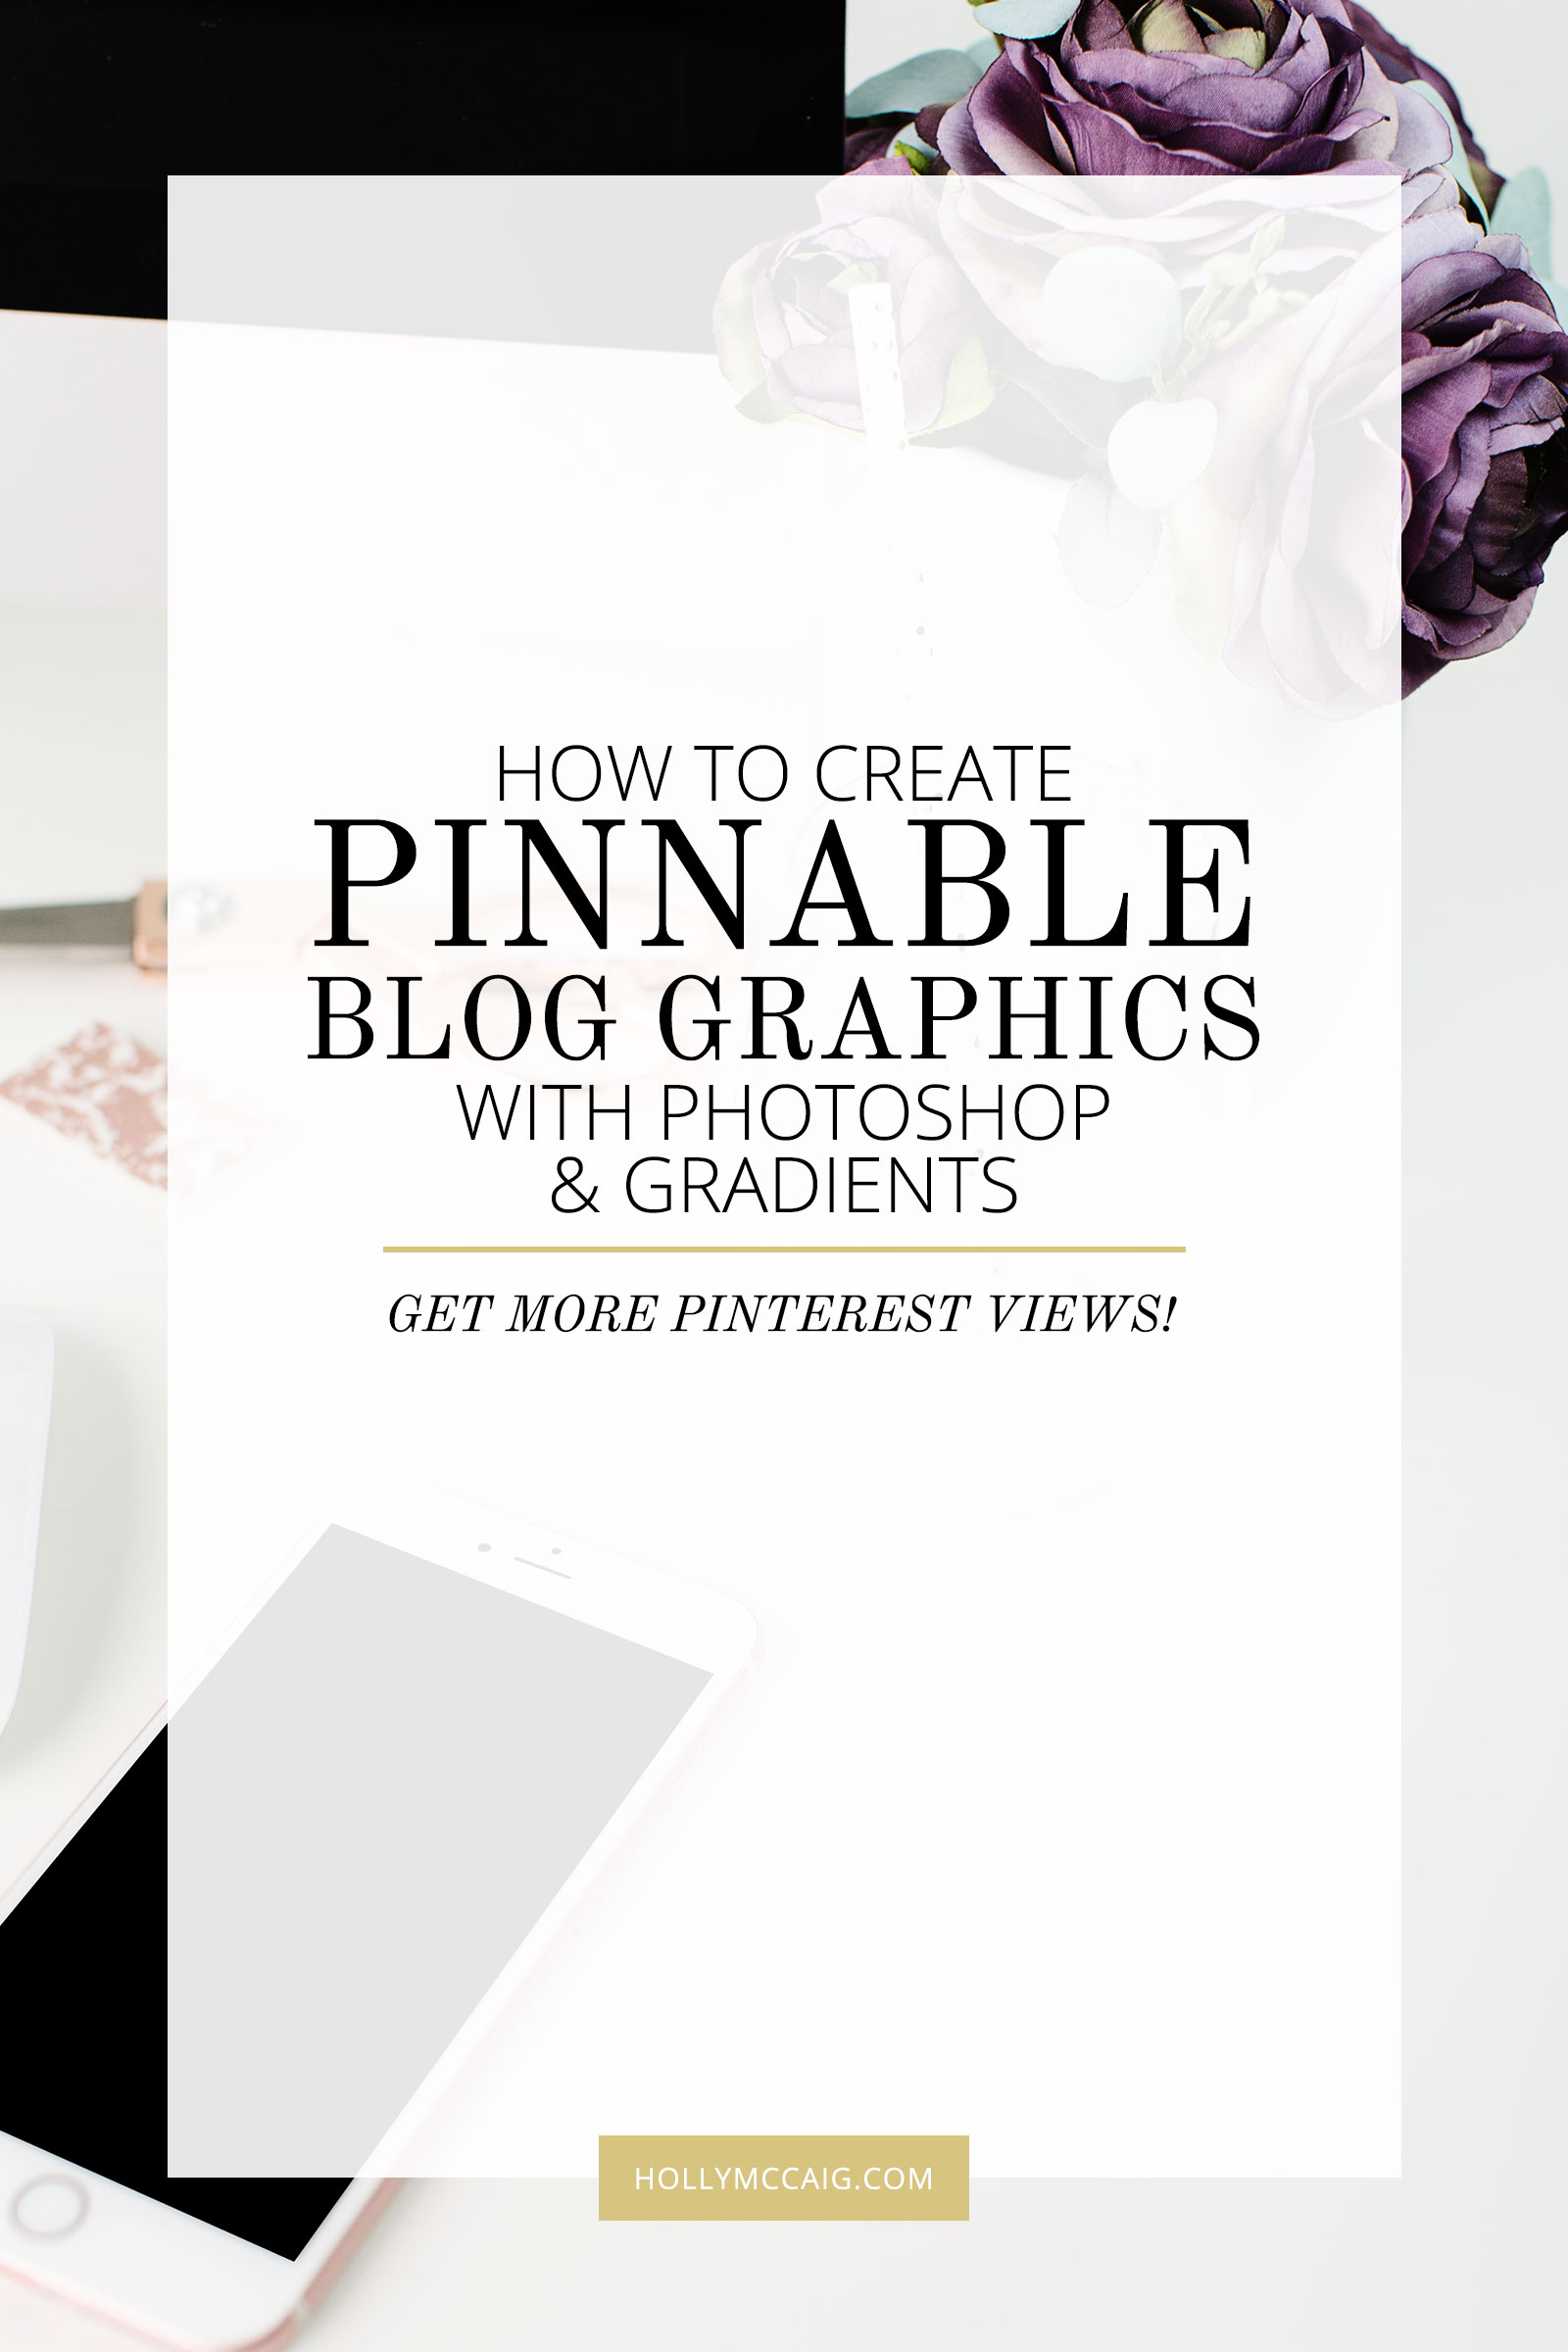 Get more Pinterest views and repins by using Photoshop to design graphics for your blog.